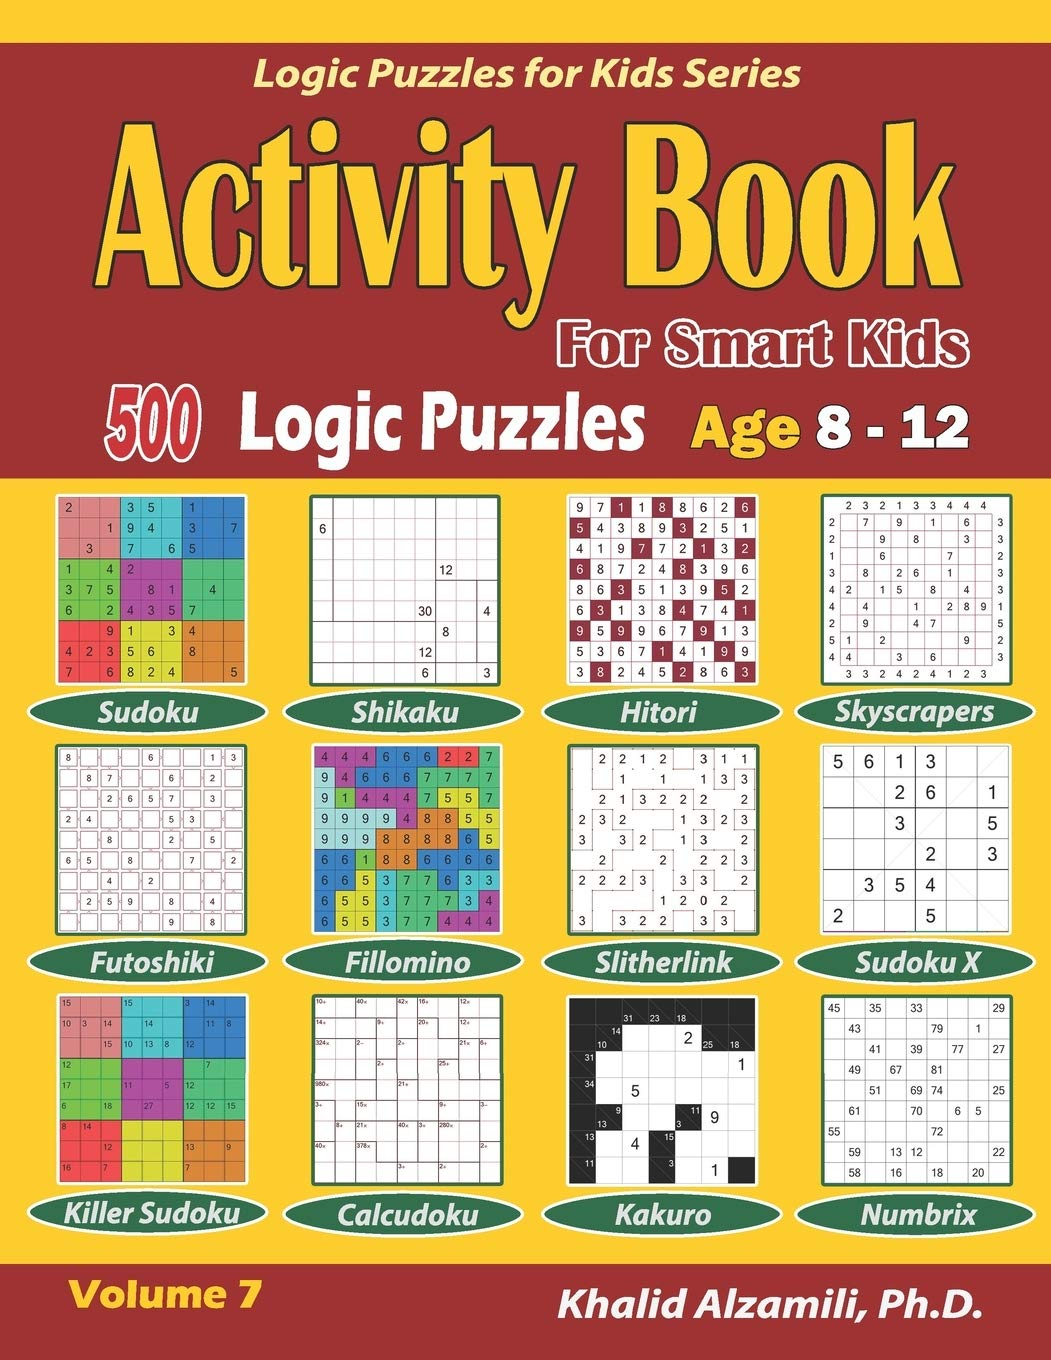 Activity Book for Smart Kids: 500 Logic Puzzles (Sudoku, Fillomino, Kakuro, Futoshiki, Hitori, Slitherlink, Killer Sudoku, Calcudoku, Sudoku X, ... :: Age 8-12 (Logic Puzzles for Kids Series)